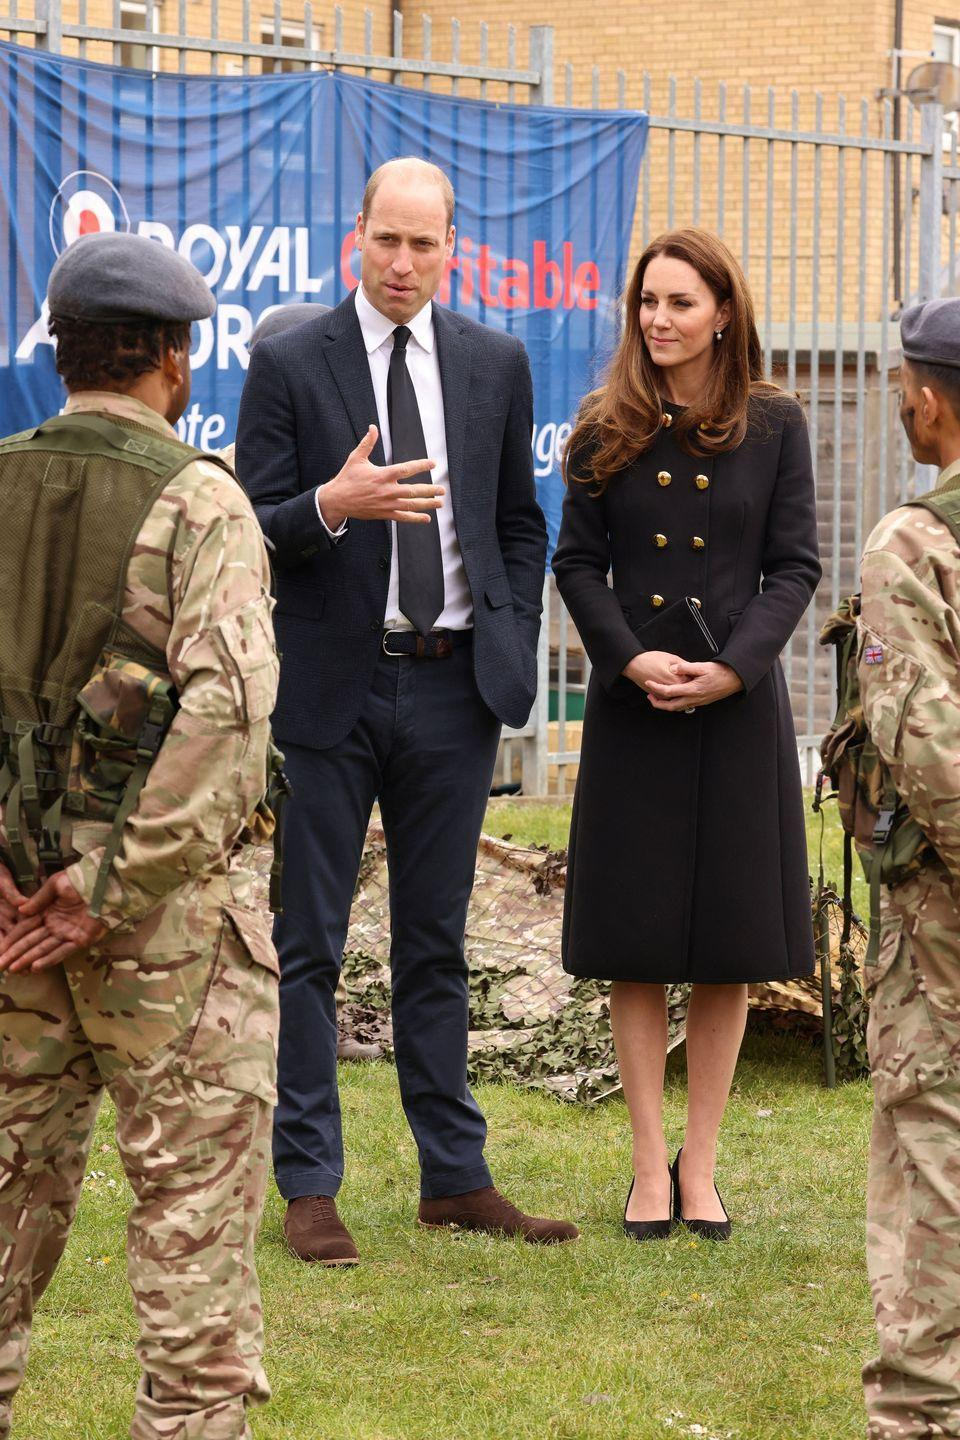 <p>The Duke and Duchess of Cambridge visited Air Cadets in East London, and paid tribute to the late Duke of Edinburgh. As the royal family was still in their period of mourning during this engagement, Kate wore an all-black ensemble. <br></p>